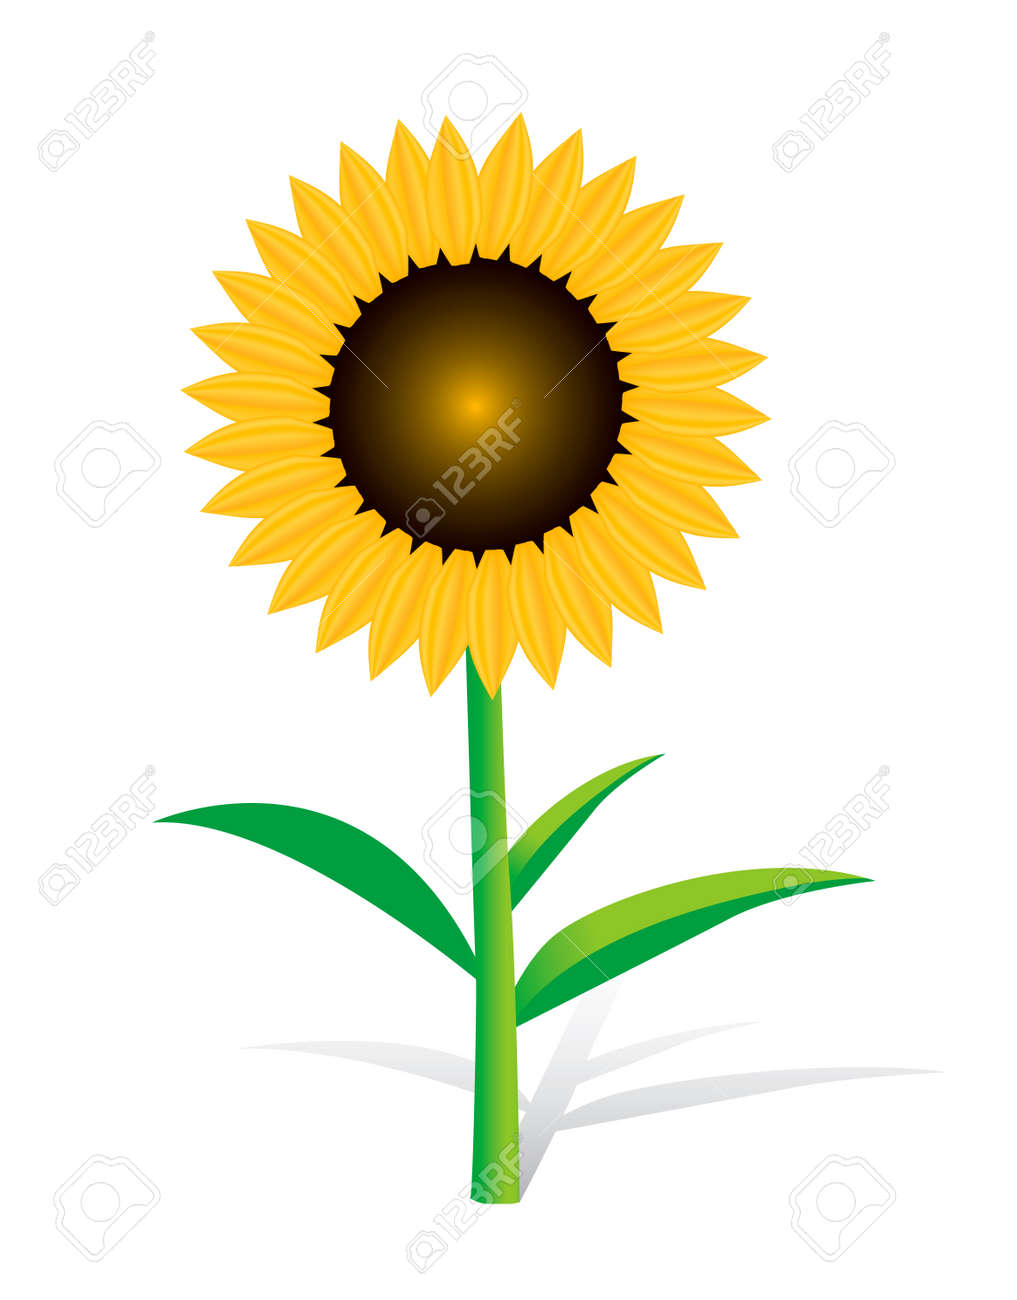 single sunflower cliparts, stock vector and royalty free, Beautiful flower